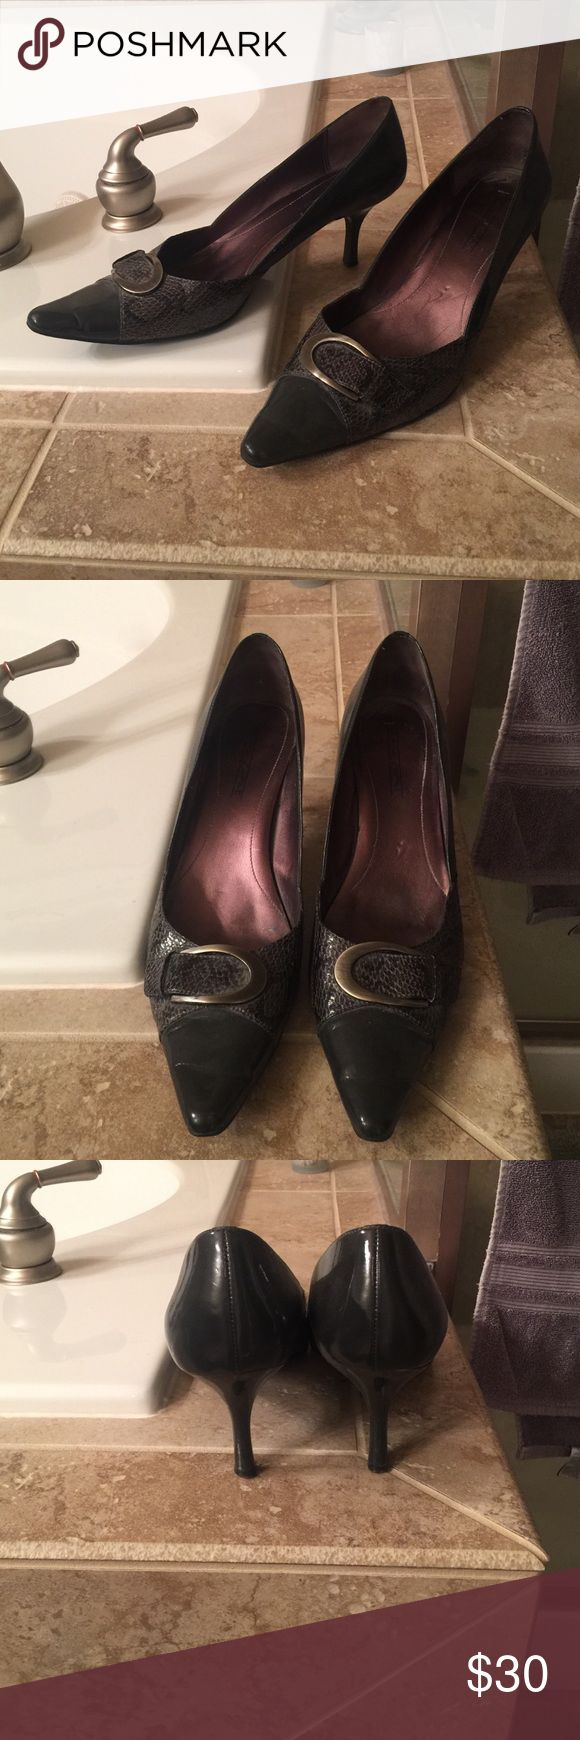 Circa Joan David Heels Circa Joan David gray Heels. Size 11, 2 and 1/2 heel.  Good condition with slight scratch on left heel.  Barely noticeable.  Very comfortable! Joan & David Shoes Heels